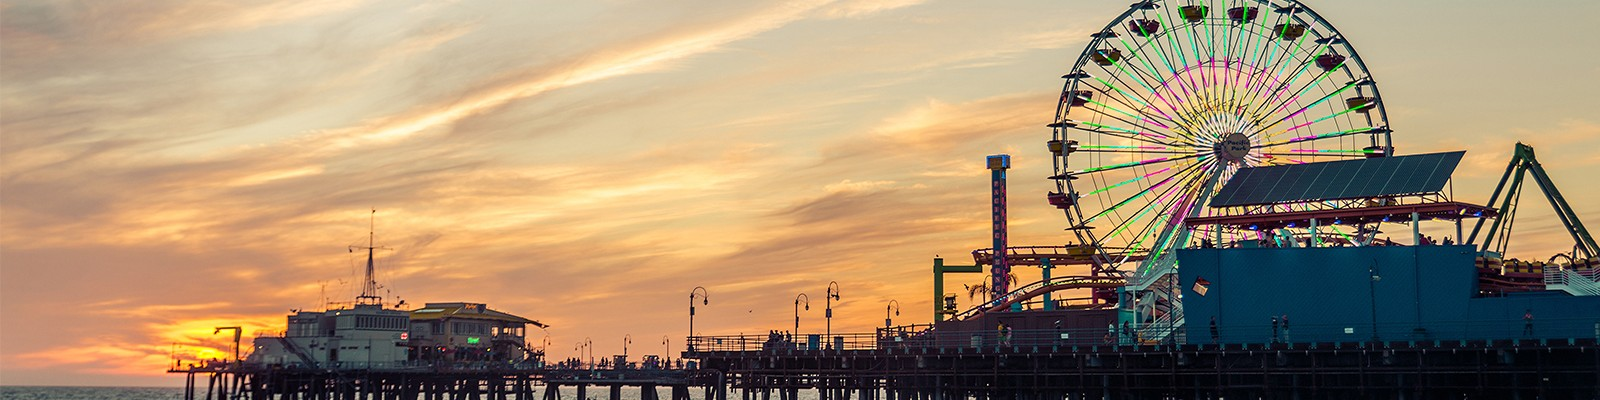 Los Angeles Holidays - Santa Monica Pier - Header